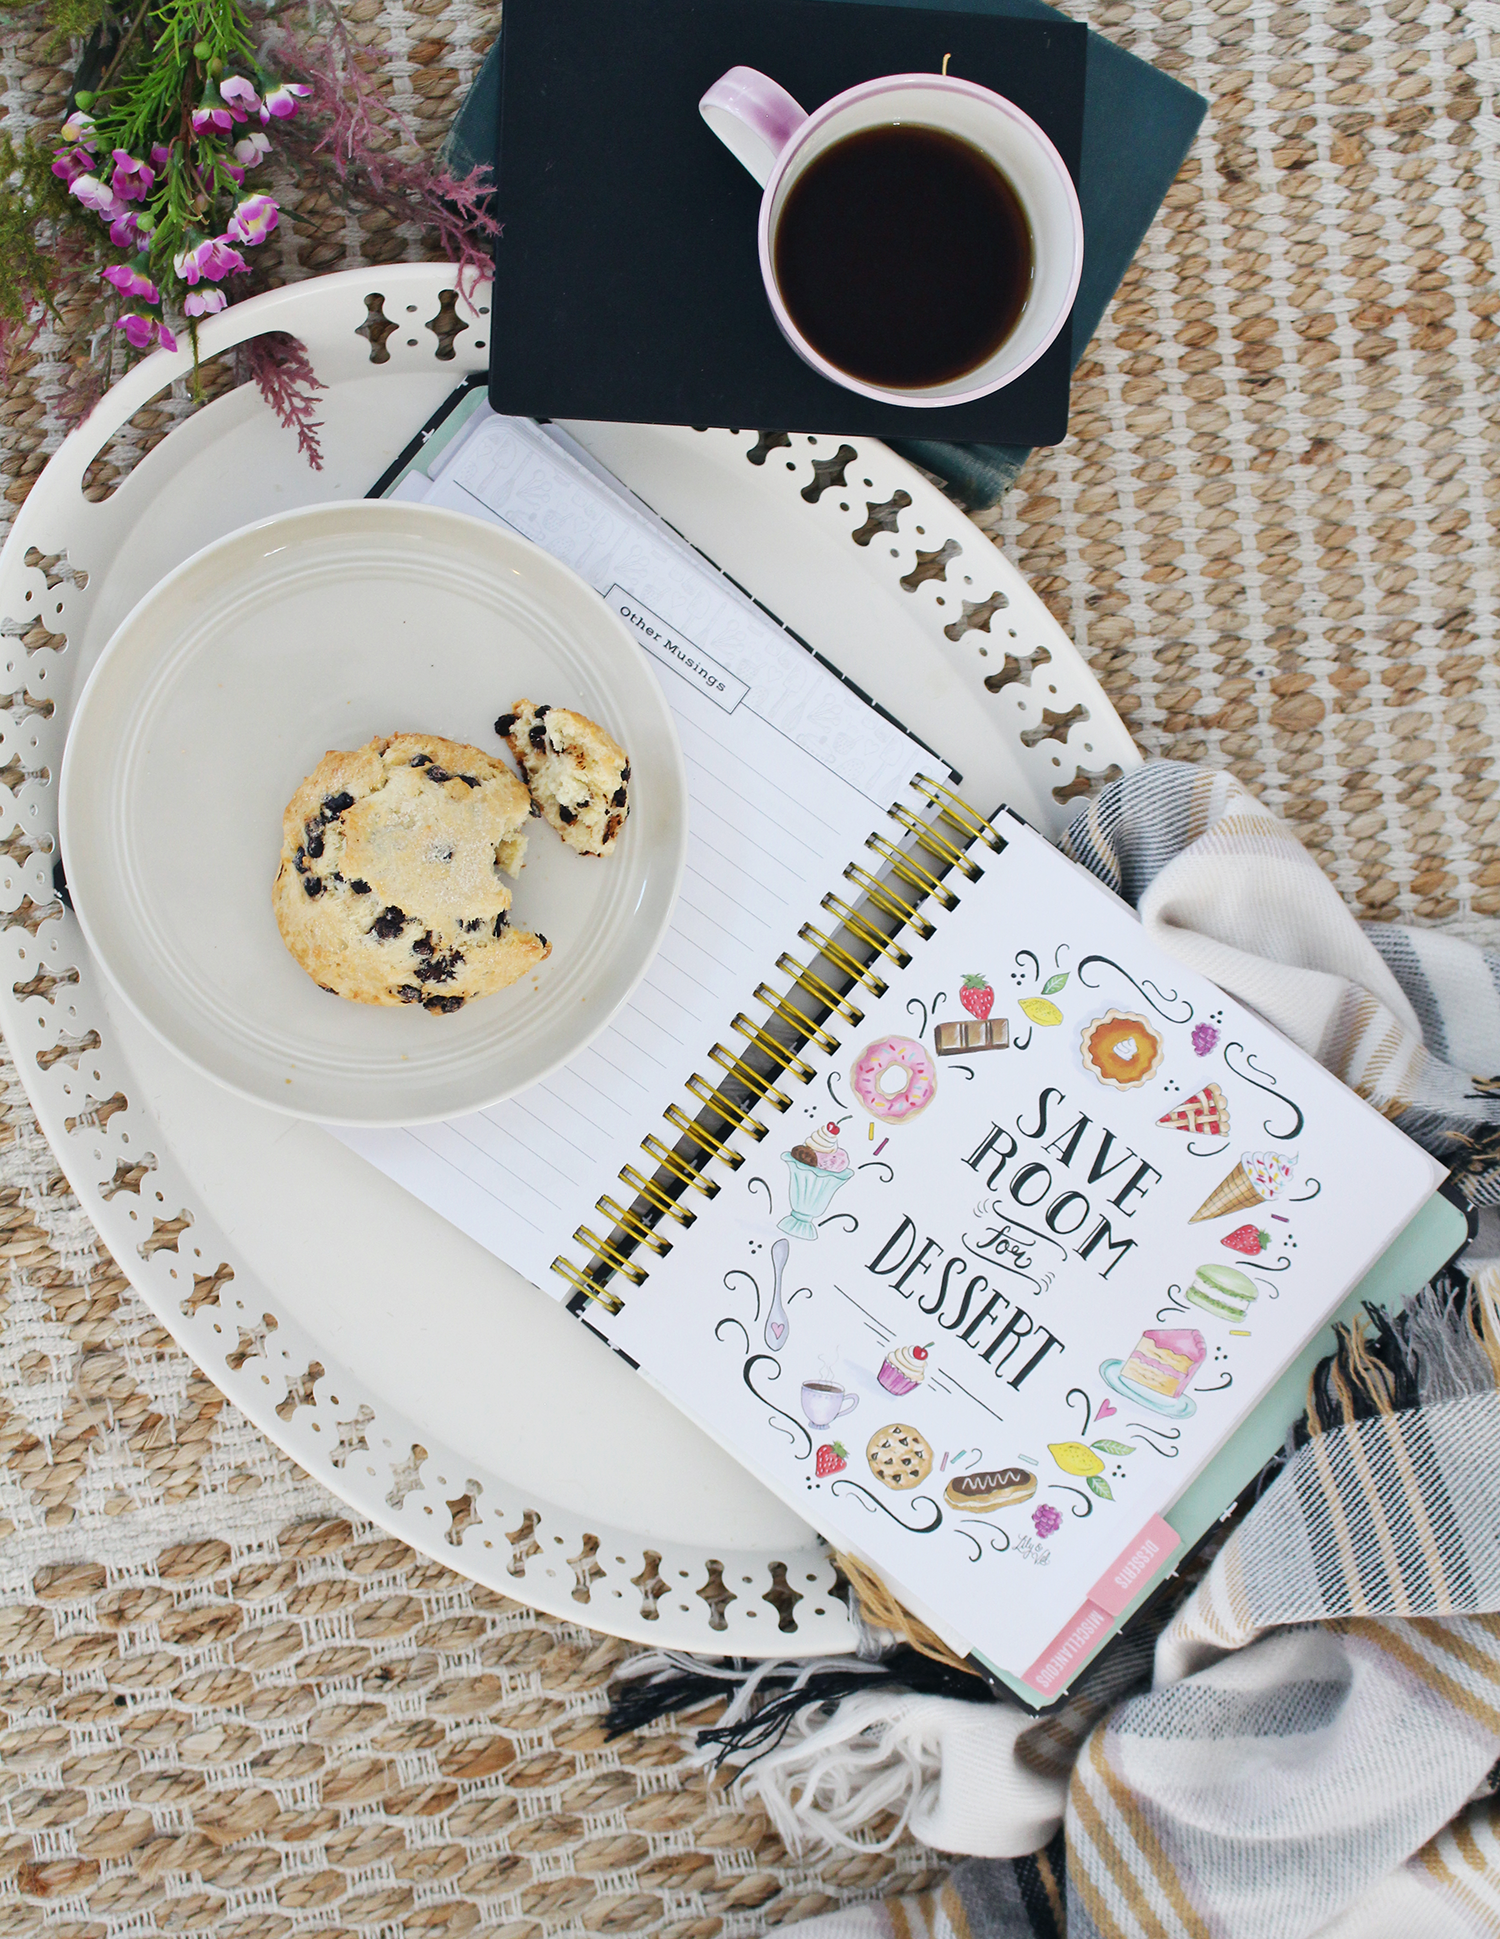 Every tab in the Keepsake Kitchen Diary features a hand-drawn illustration by Valerie McKeehan